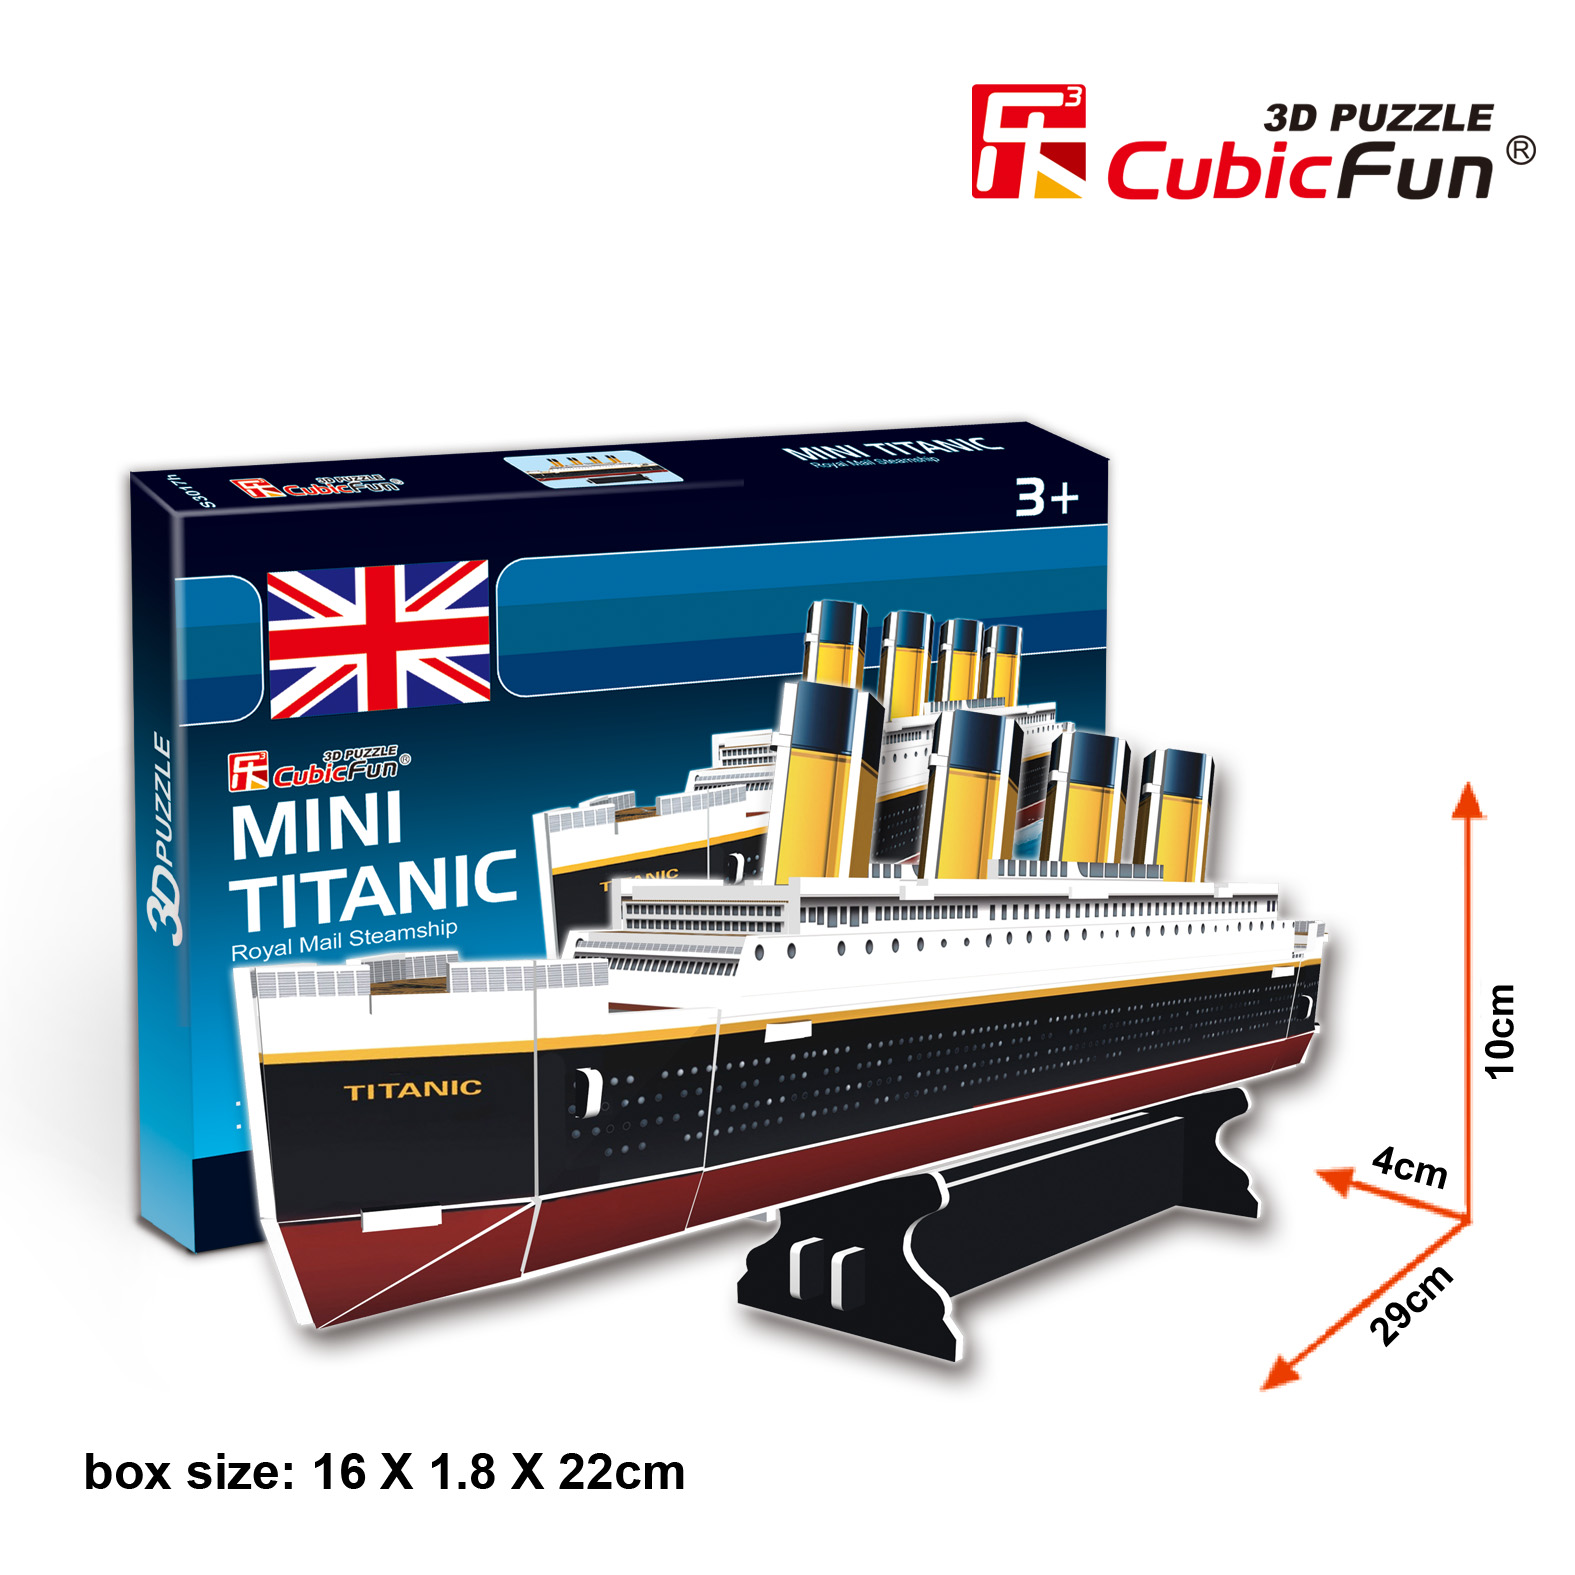 New Pinle Cube 3D Stereo Puzzle Gift S3017H Mini Titanic Cruise